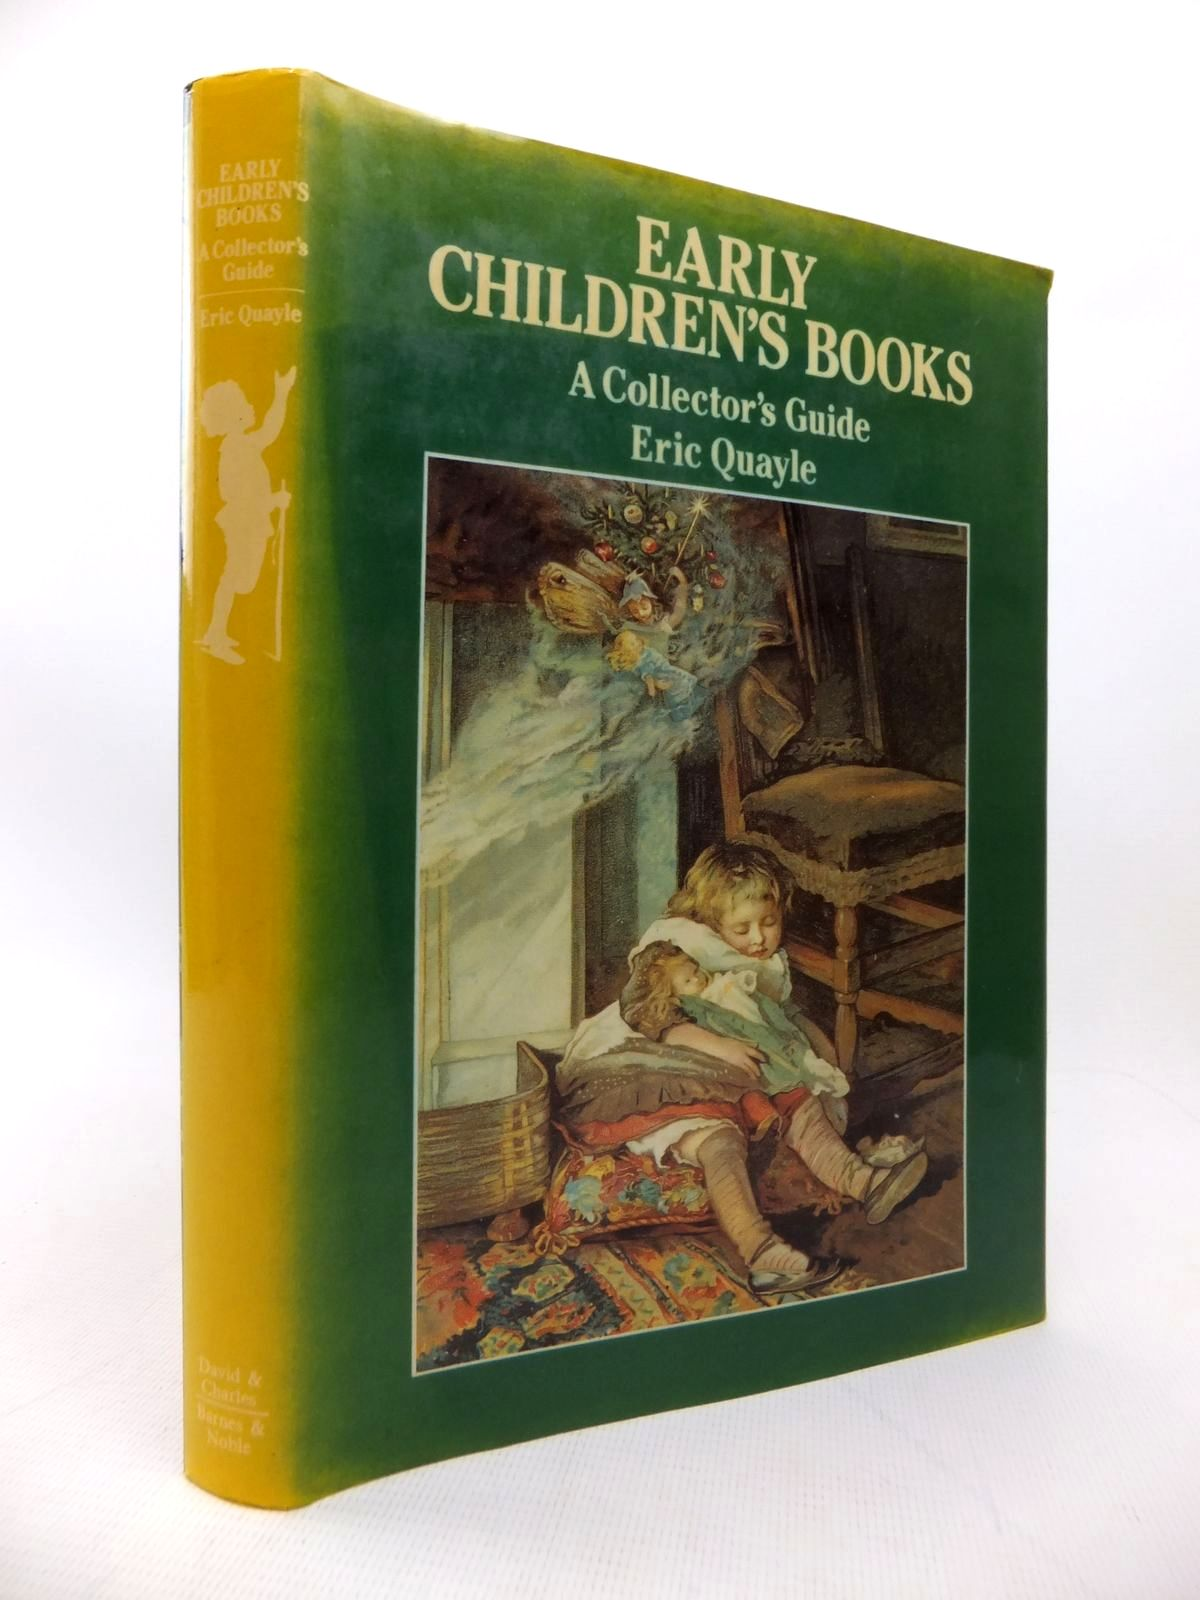 Photo of EARLY CHILDREN'S BOOKS A COLLECTOR'S GUIDE written by Quayle, Eric published by David & Charles, Barnes & Noble Books (STOCK CODE: 1814181)  for sale by Stella & Rose's Books